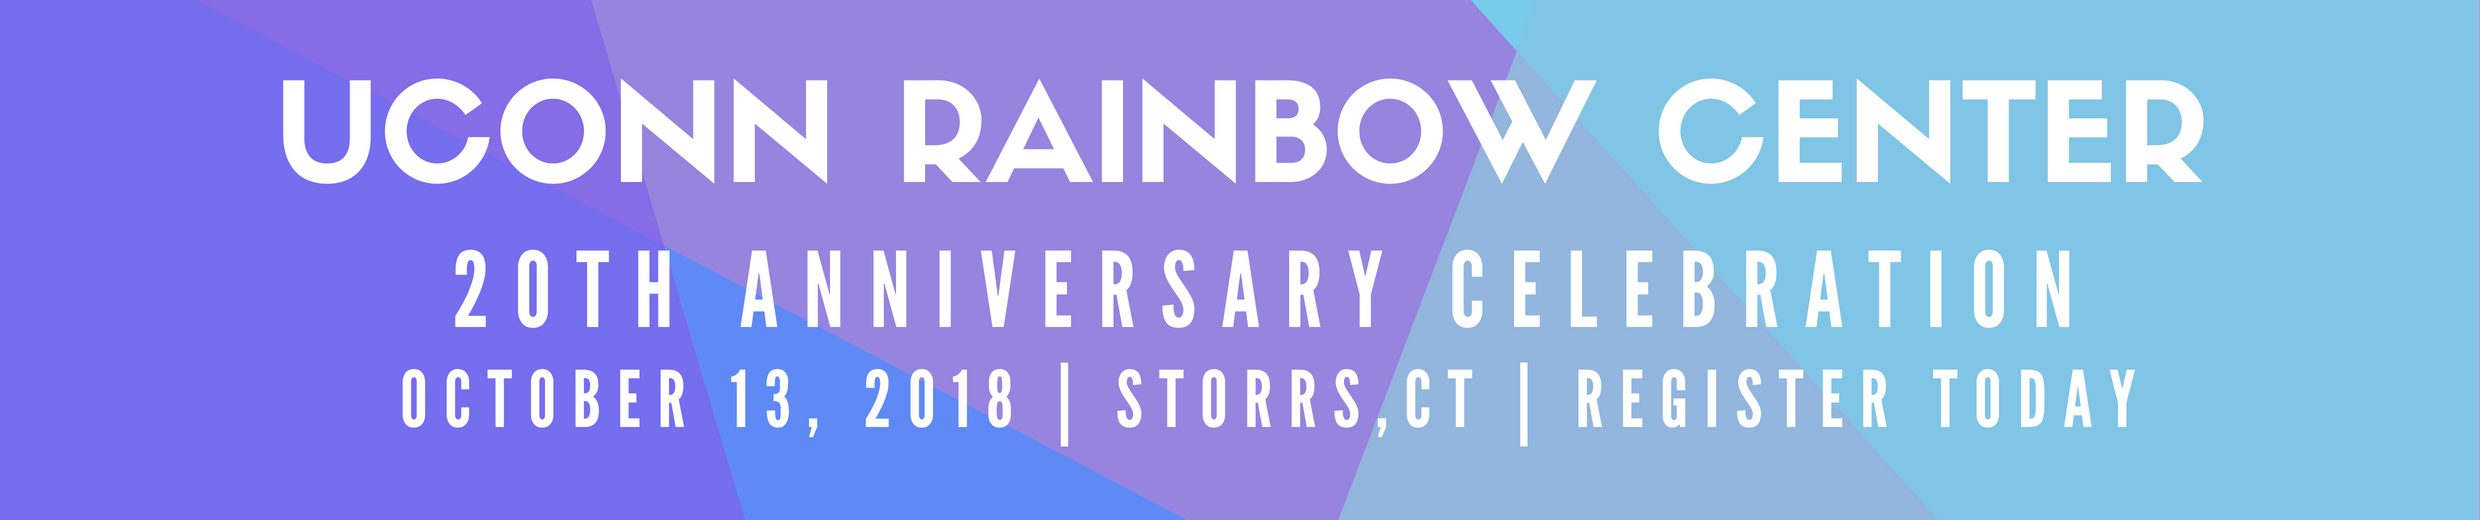 Rainbow Center 20th Anniversary Oct 13 Register Today